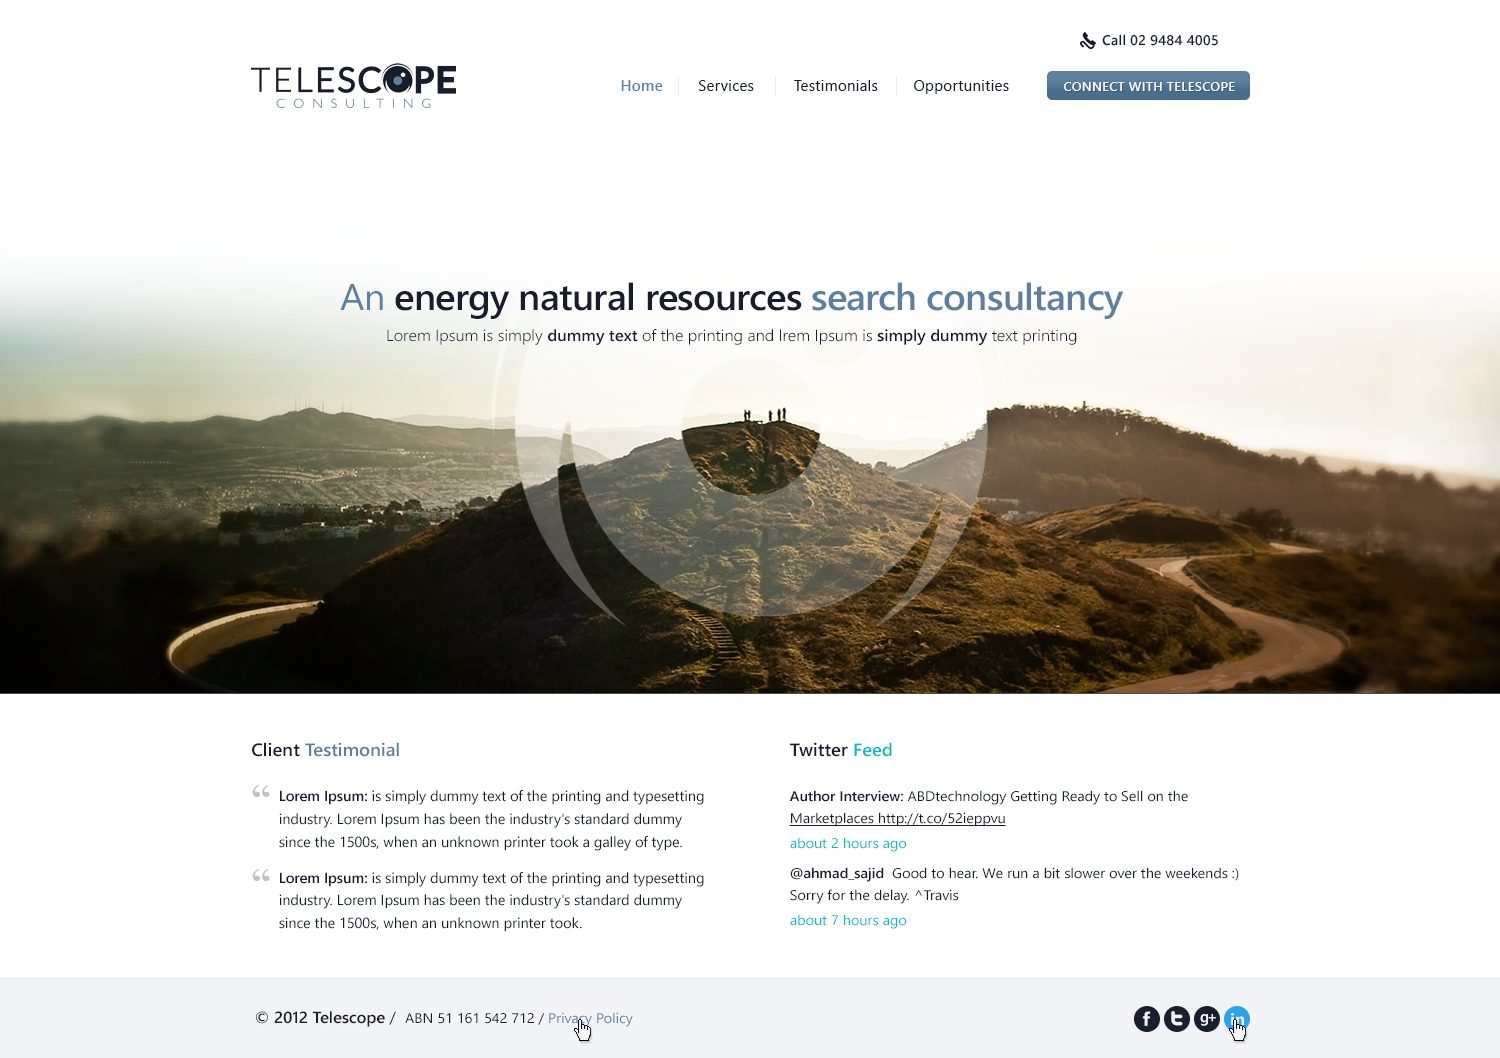 Help Telescope Consulting -  an energy/natural resources search consultancy with a new website design